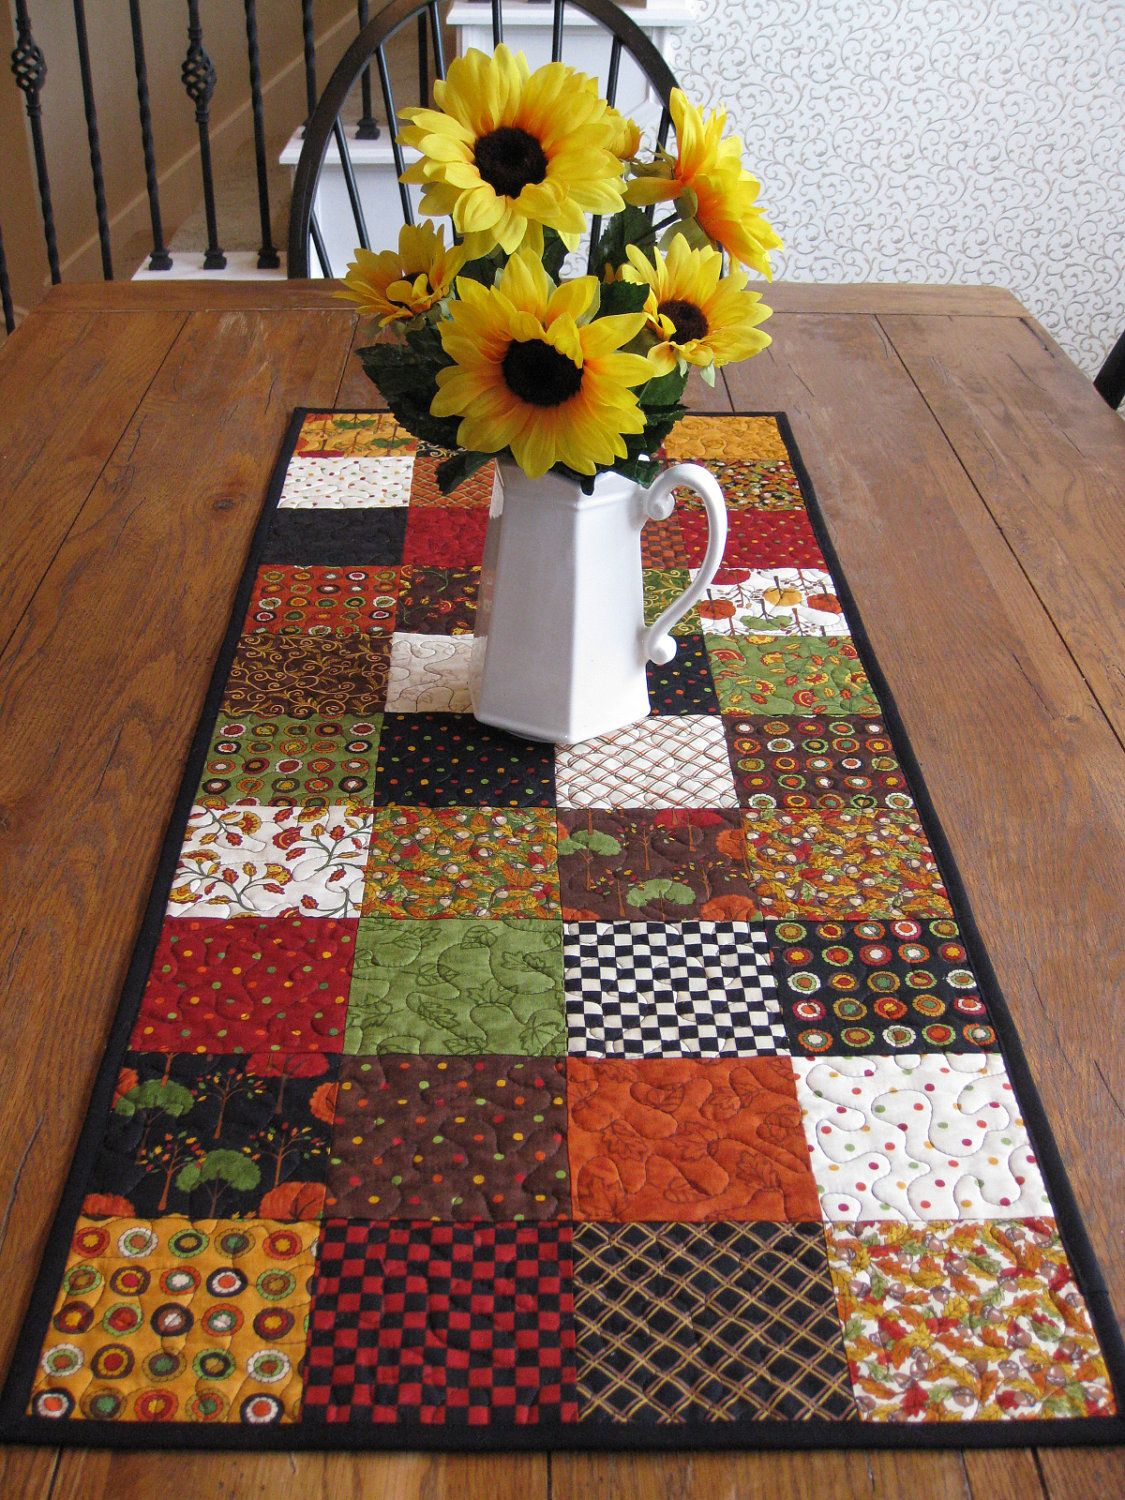 Saltbox Harvest Table Runner   Sold On Etsy   Is Lovely Blending Of Fall  Colors   Could Be Made At Home